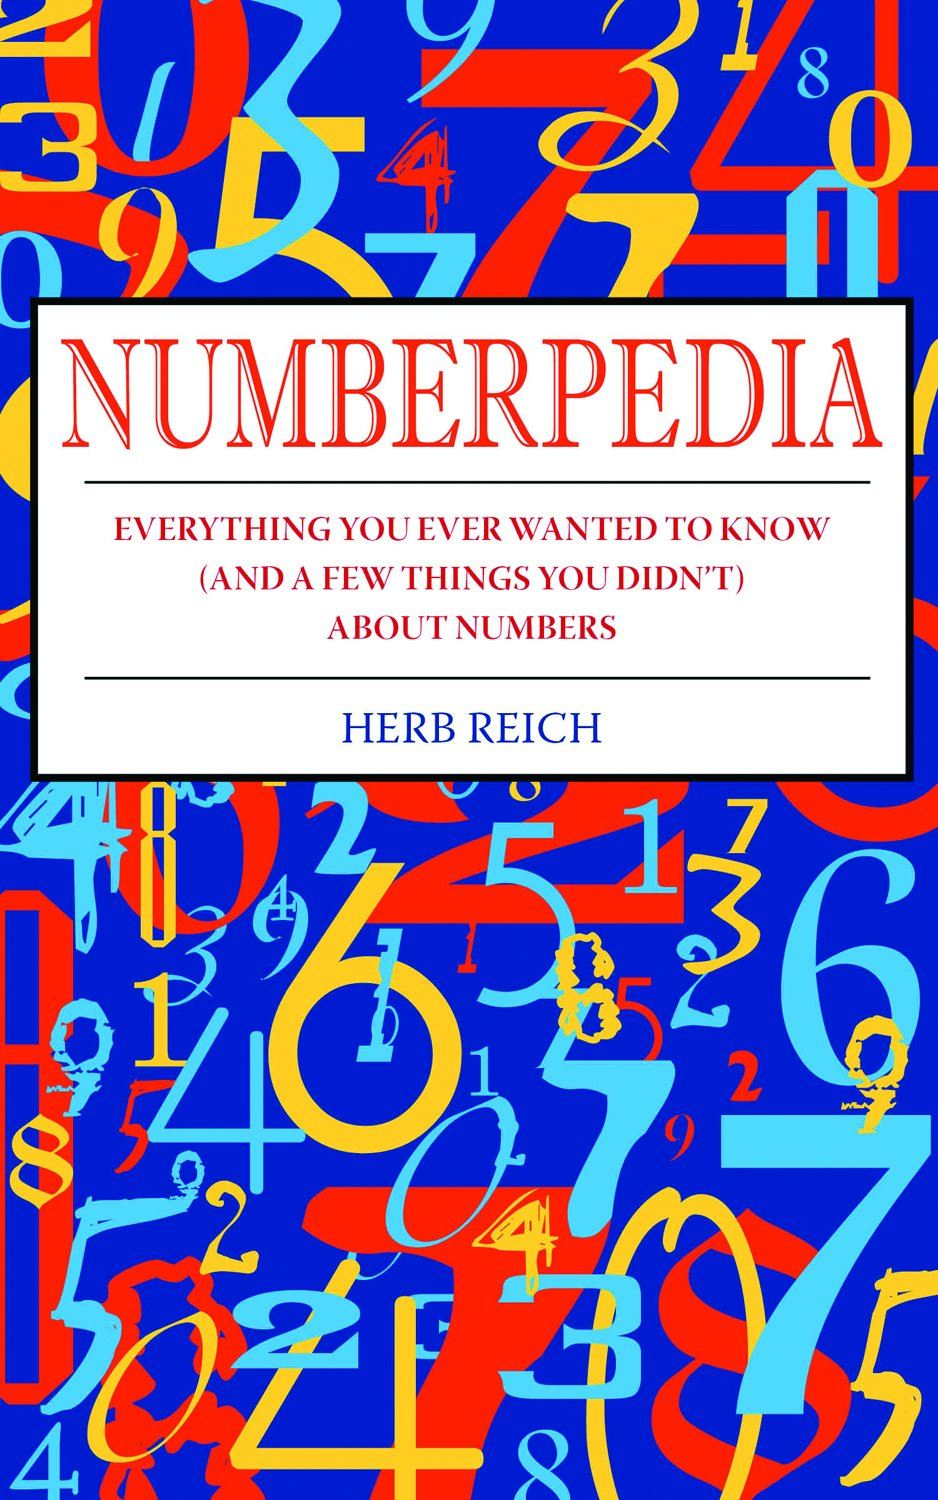 Numberpedia: Everything You Ever Wanted to Know (and a Few Things You Didn't) About Numbers By: Herb Reich